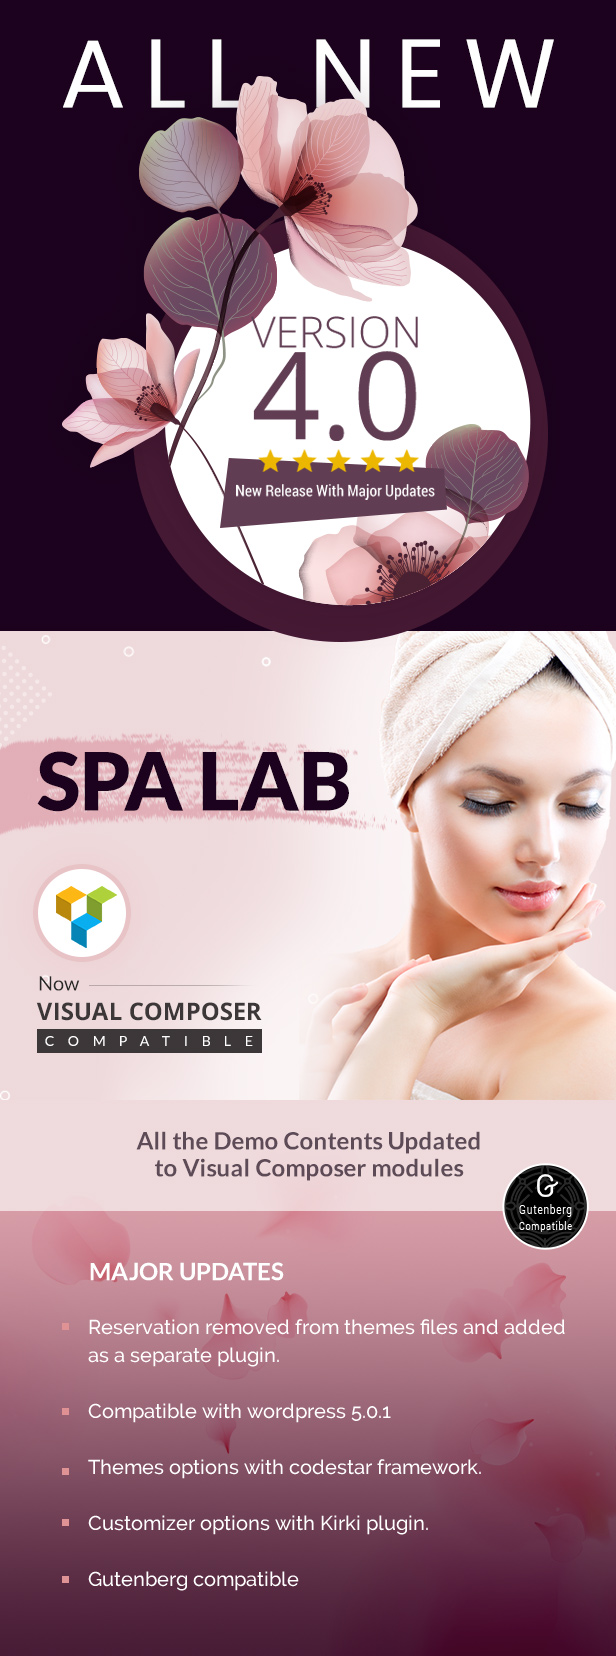 spa lab vc - Spa Lab | Beauty Salon, Wellness WordPress Theme